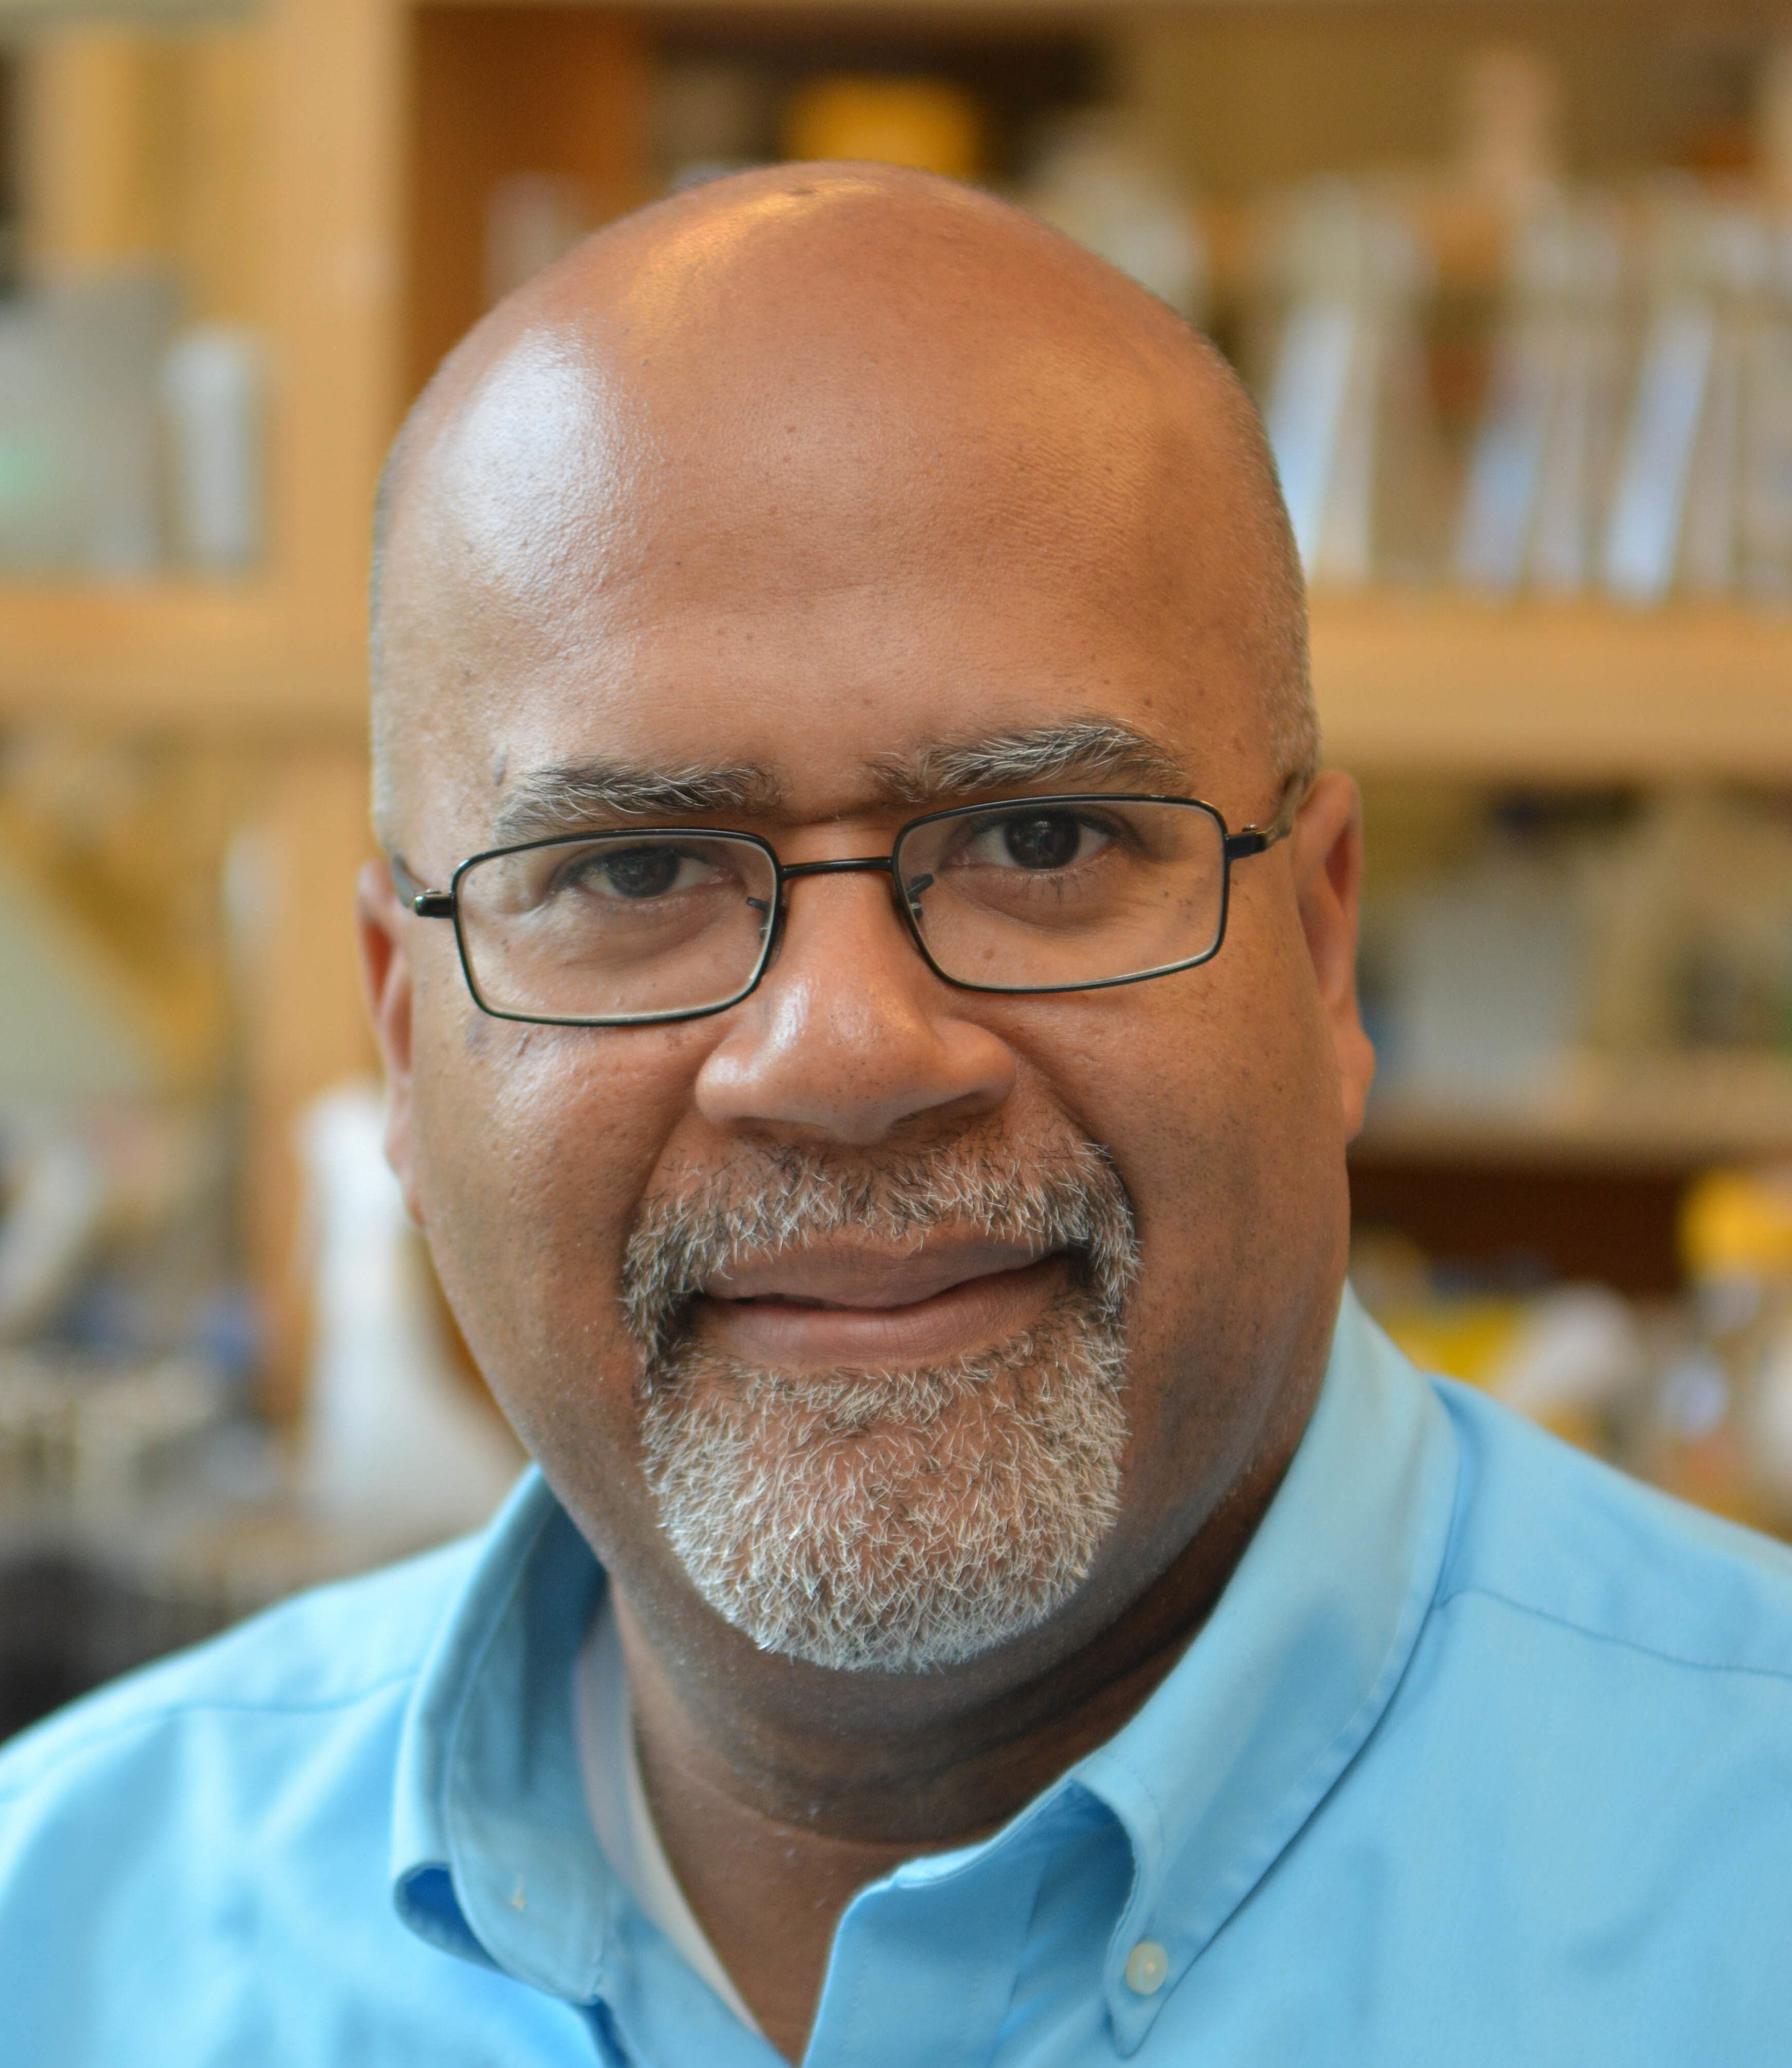 Yale researcher studies viruses 'For the good they can do'